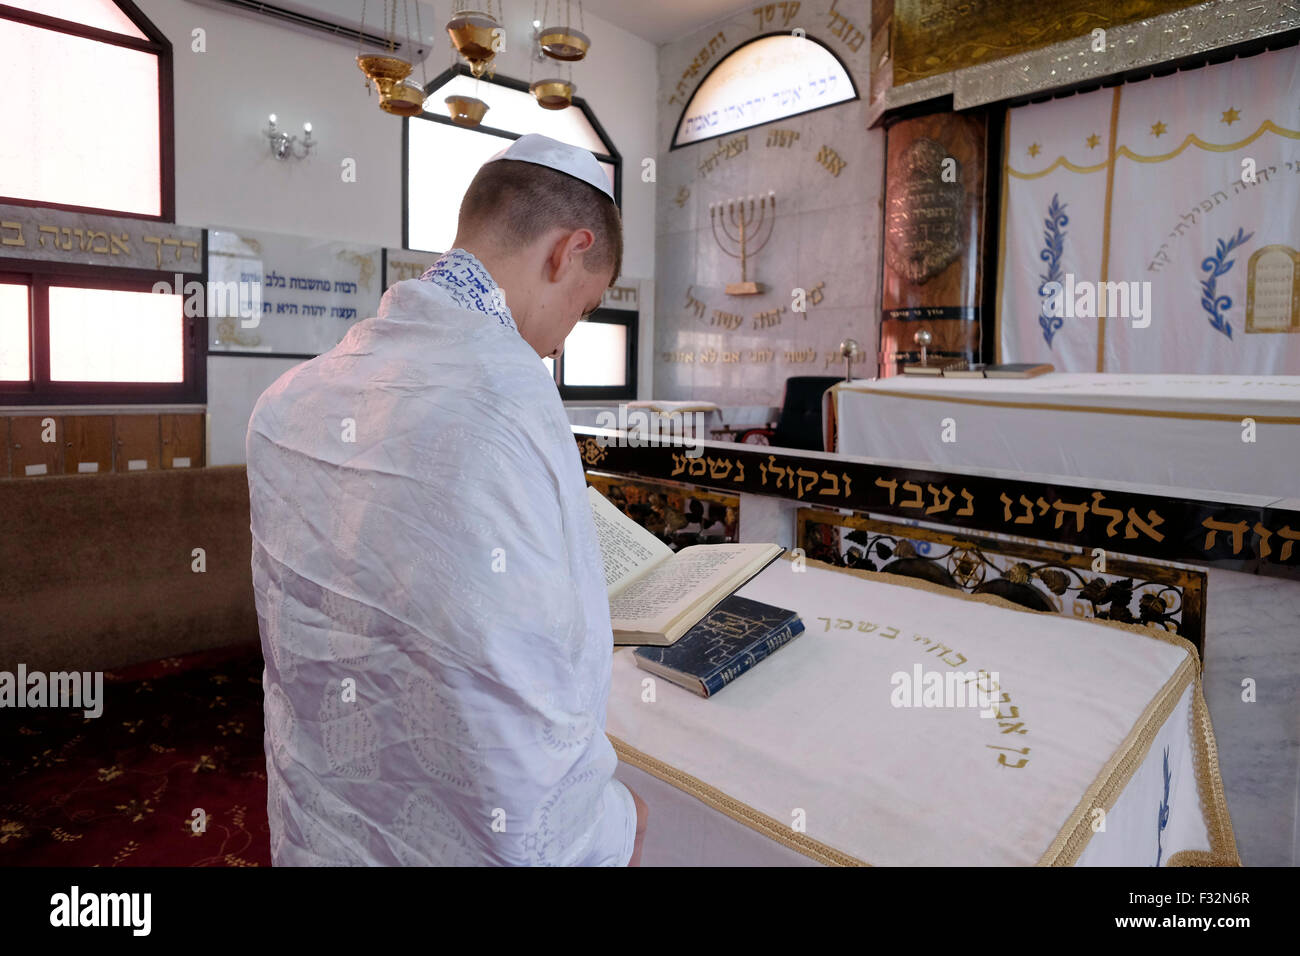 A Karaite Jew praying in a Karaite synagogue in the city of Ramle or Ramleh Israel Stock Photo